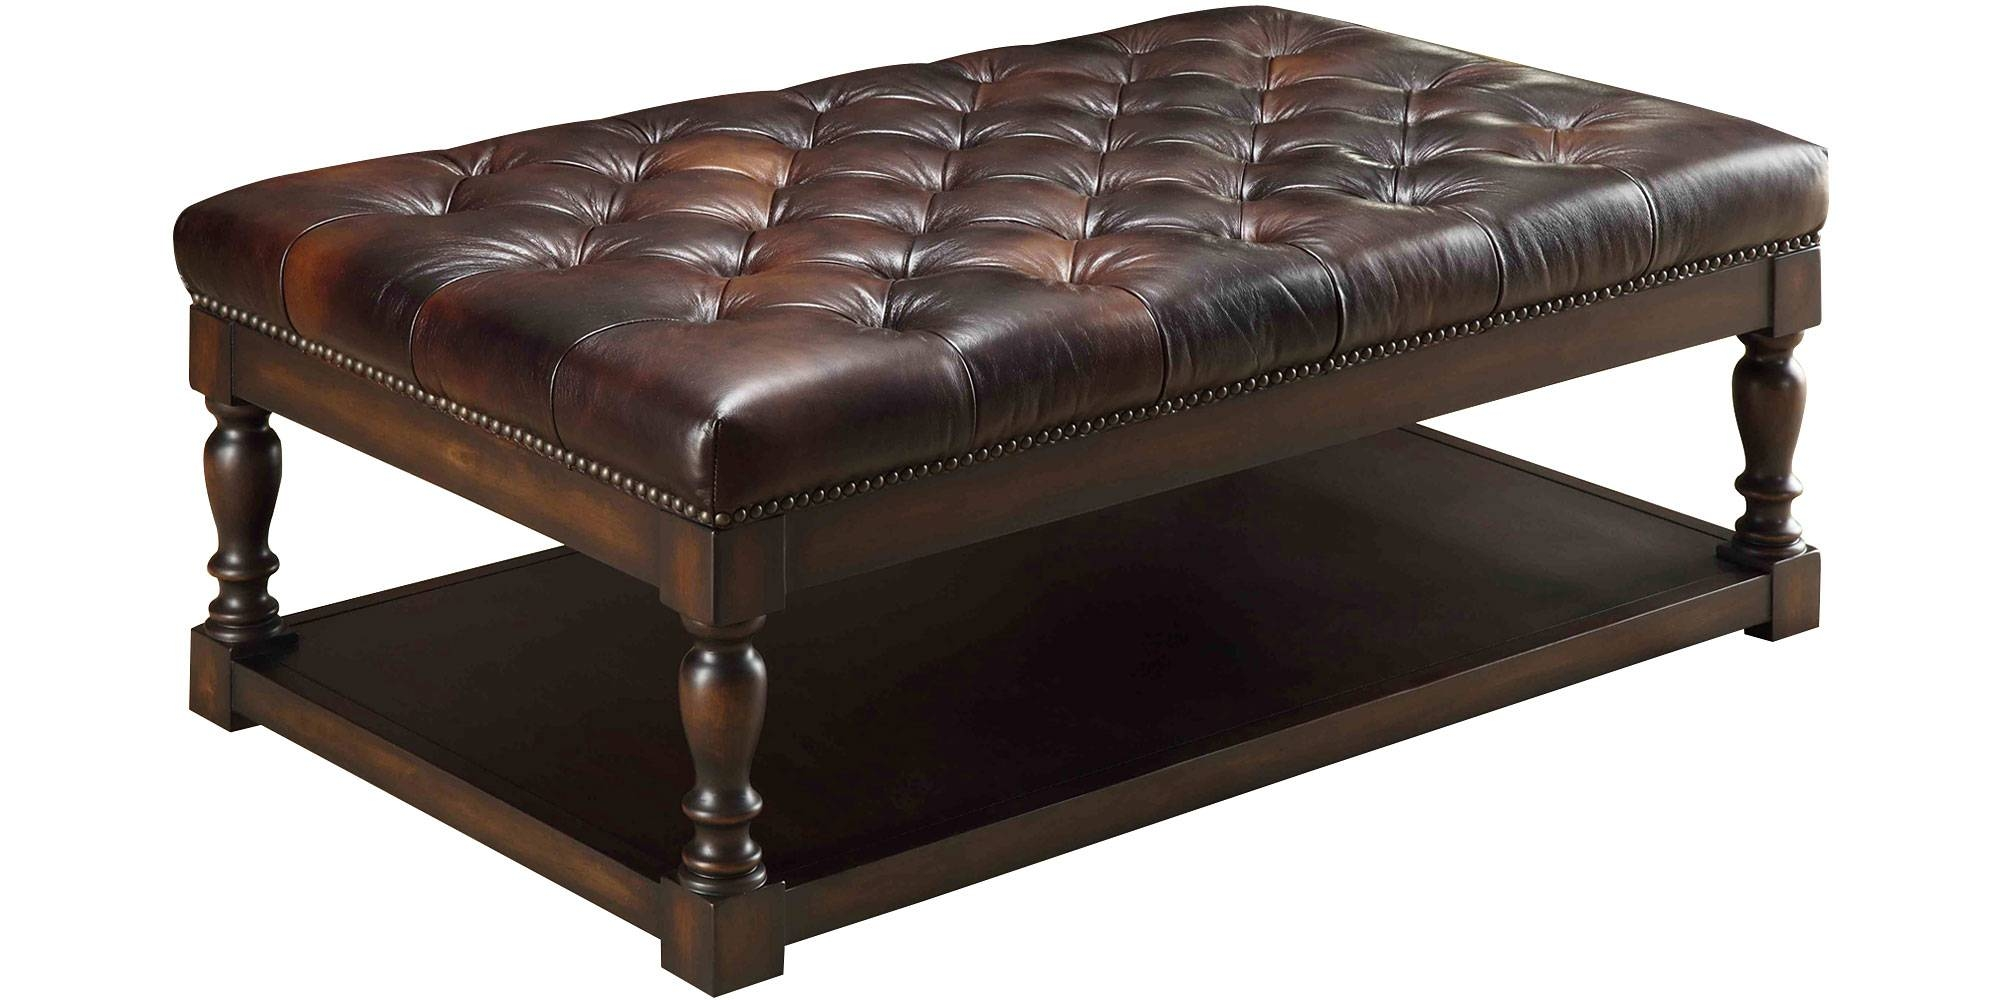 Coffee Table: Cool Leather Ottoman Coffee Table Designs Leather intended for Coffee Tables With Storage (Image 9 of 30)